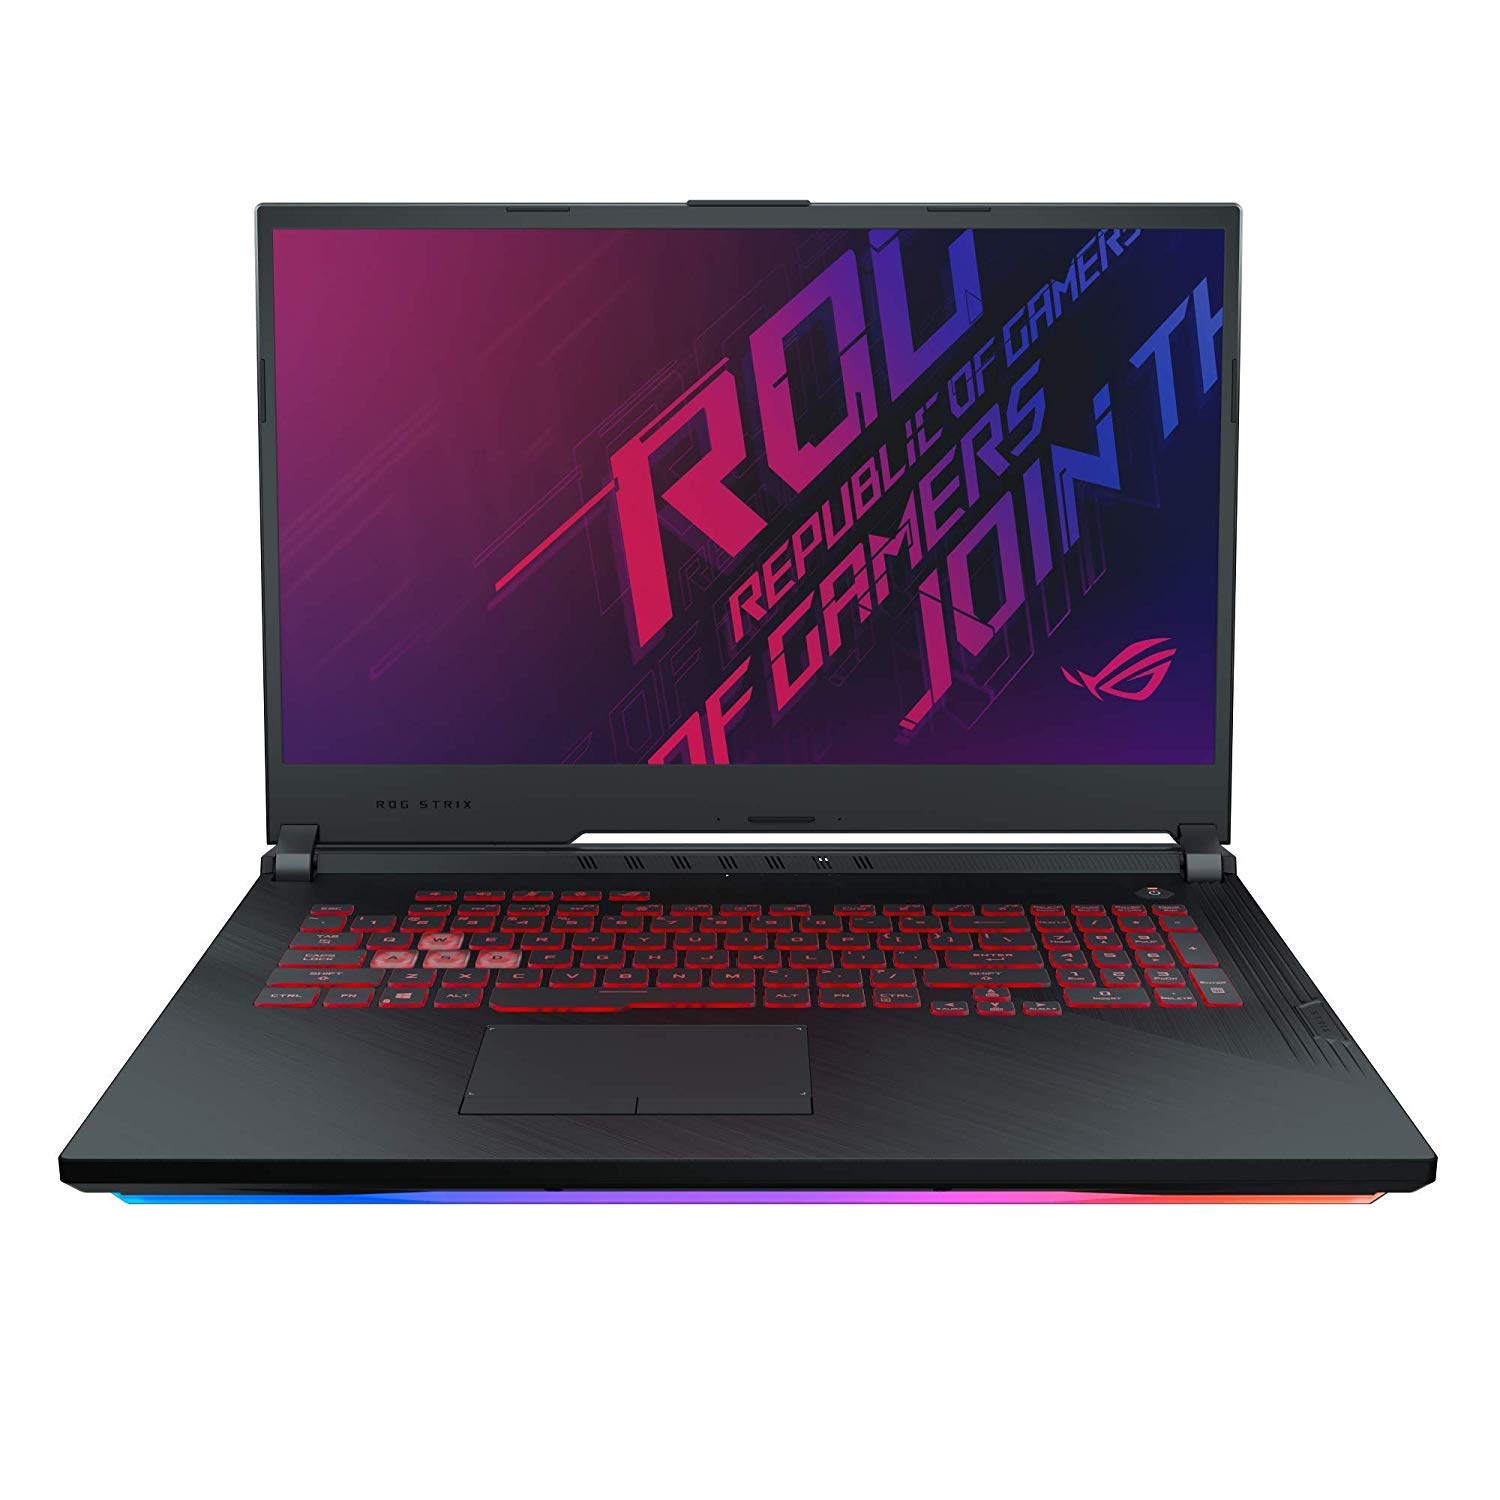 Asus ROG laptop for extensive gaming